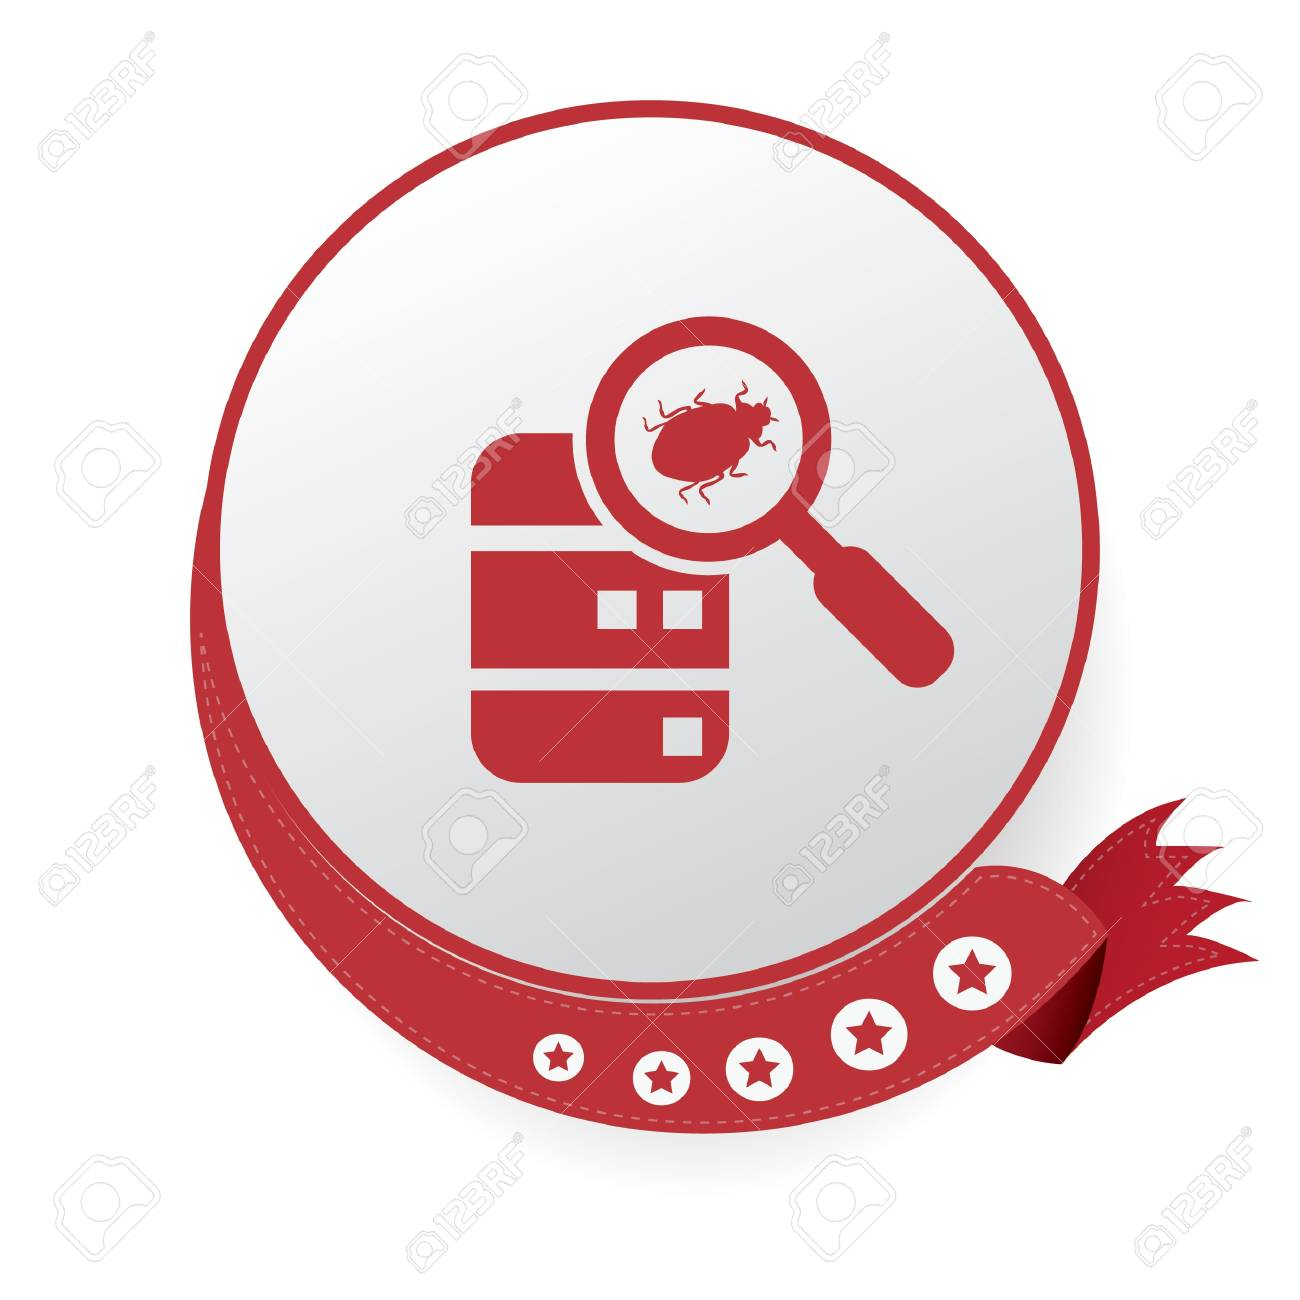 Security symbol,vector Stock Vector - 21283216